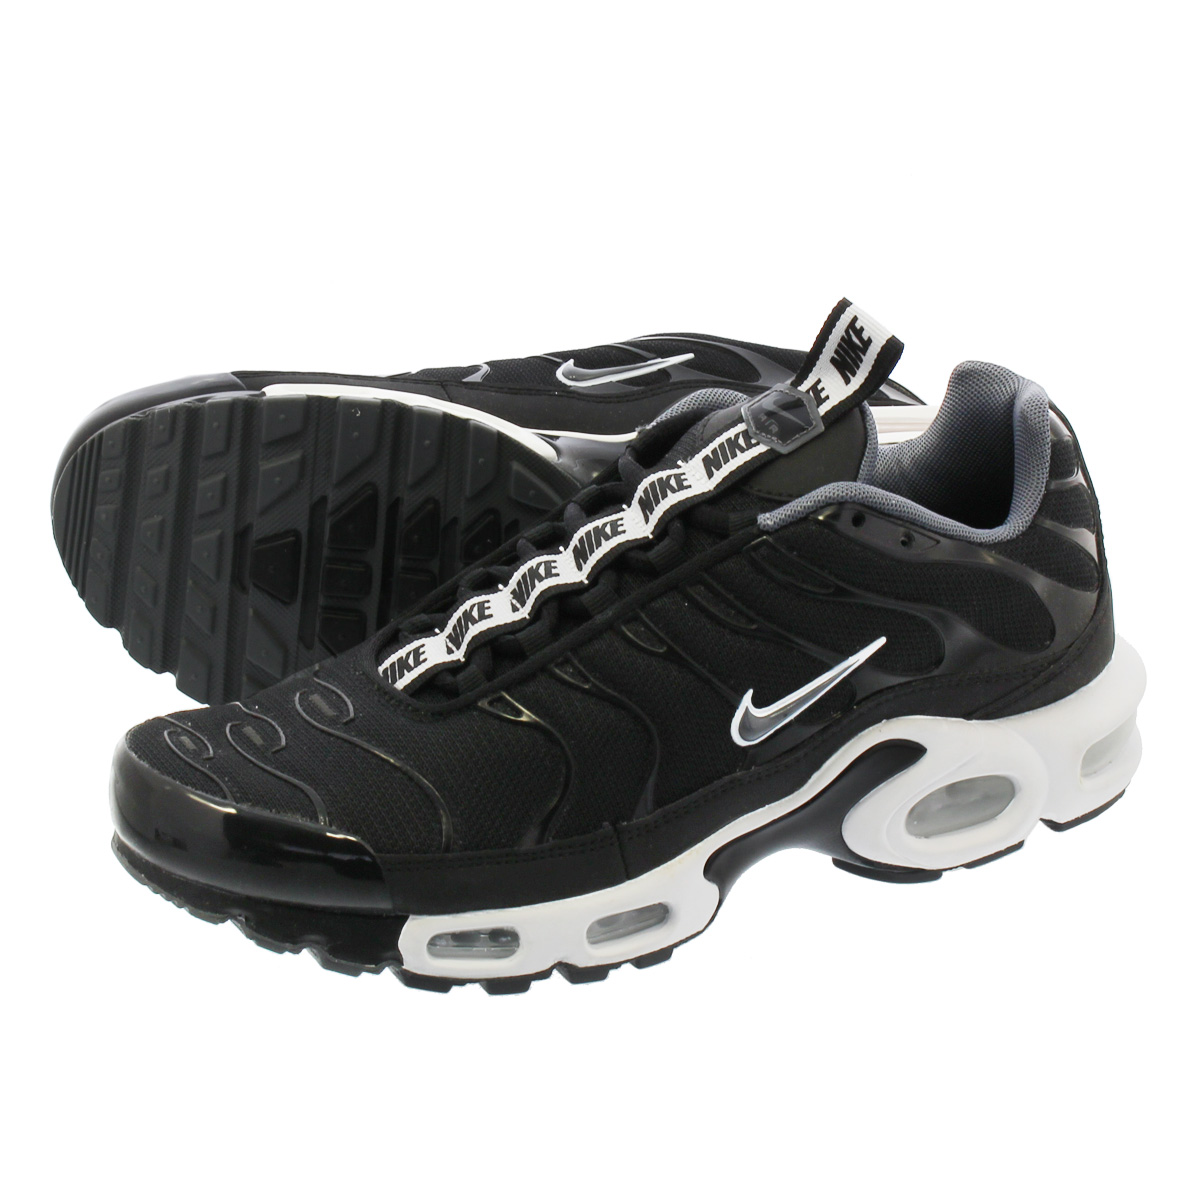 LOWTEX PLUS  NIKE AIR MAX PLUS TN SE Kie Ney AMAX plus TN SE BLACK ... 67956e2fdbb4